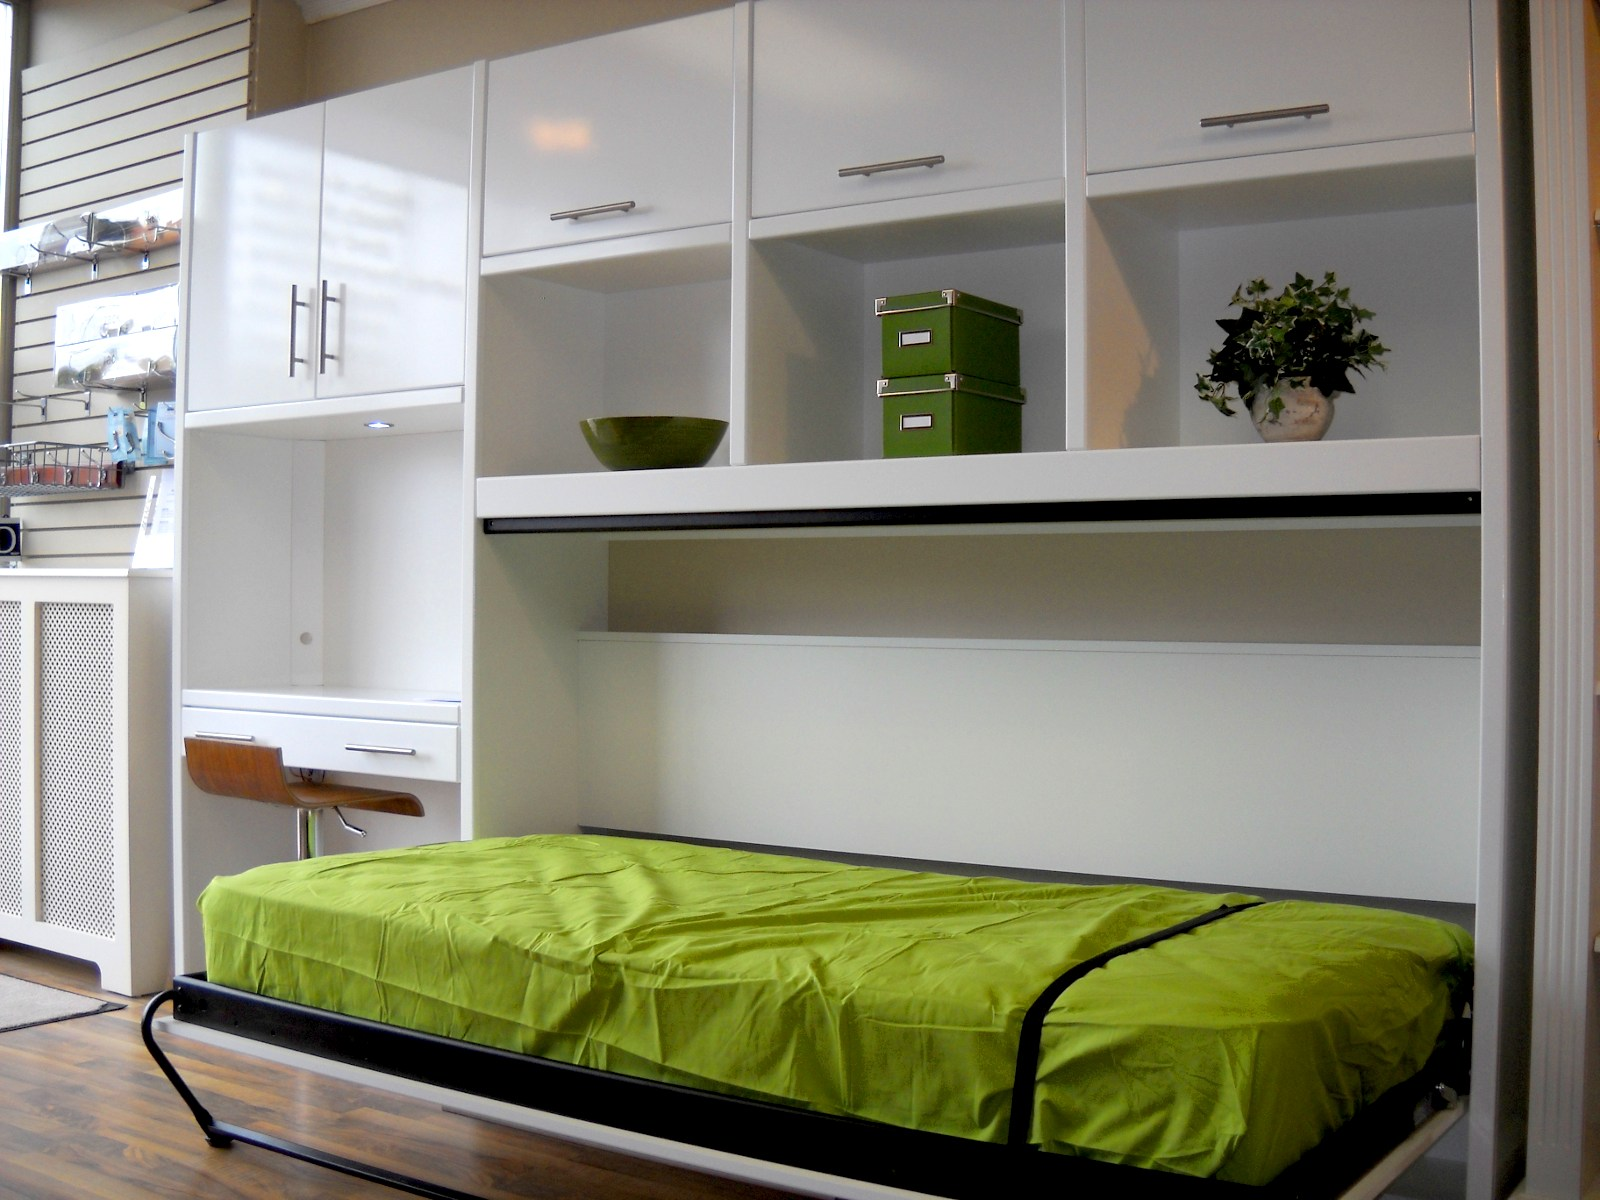 Simple Transformable Murphy Bed Ideas (Image 8 of 10)